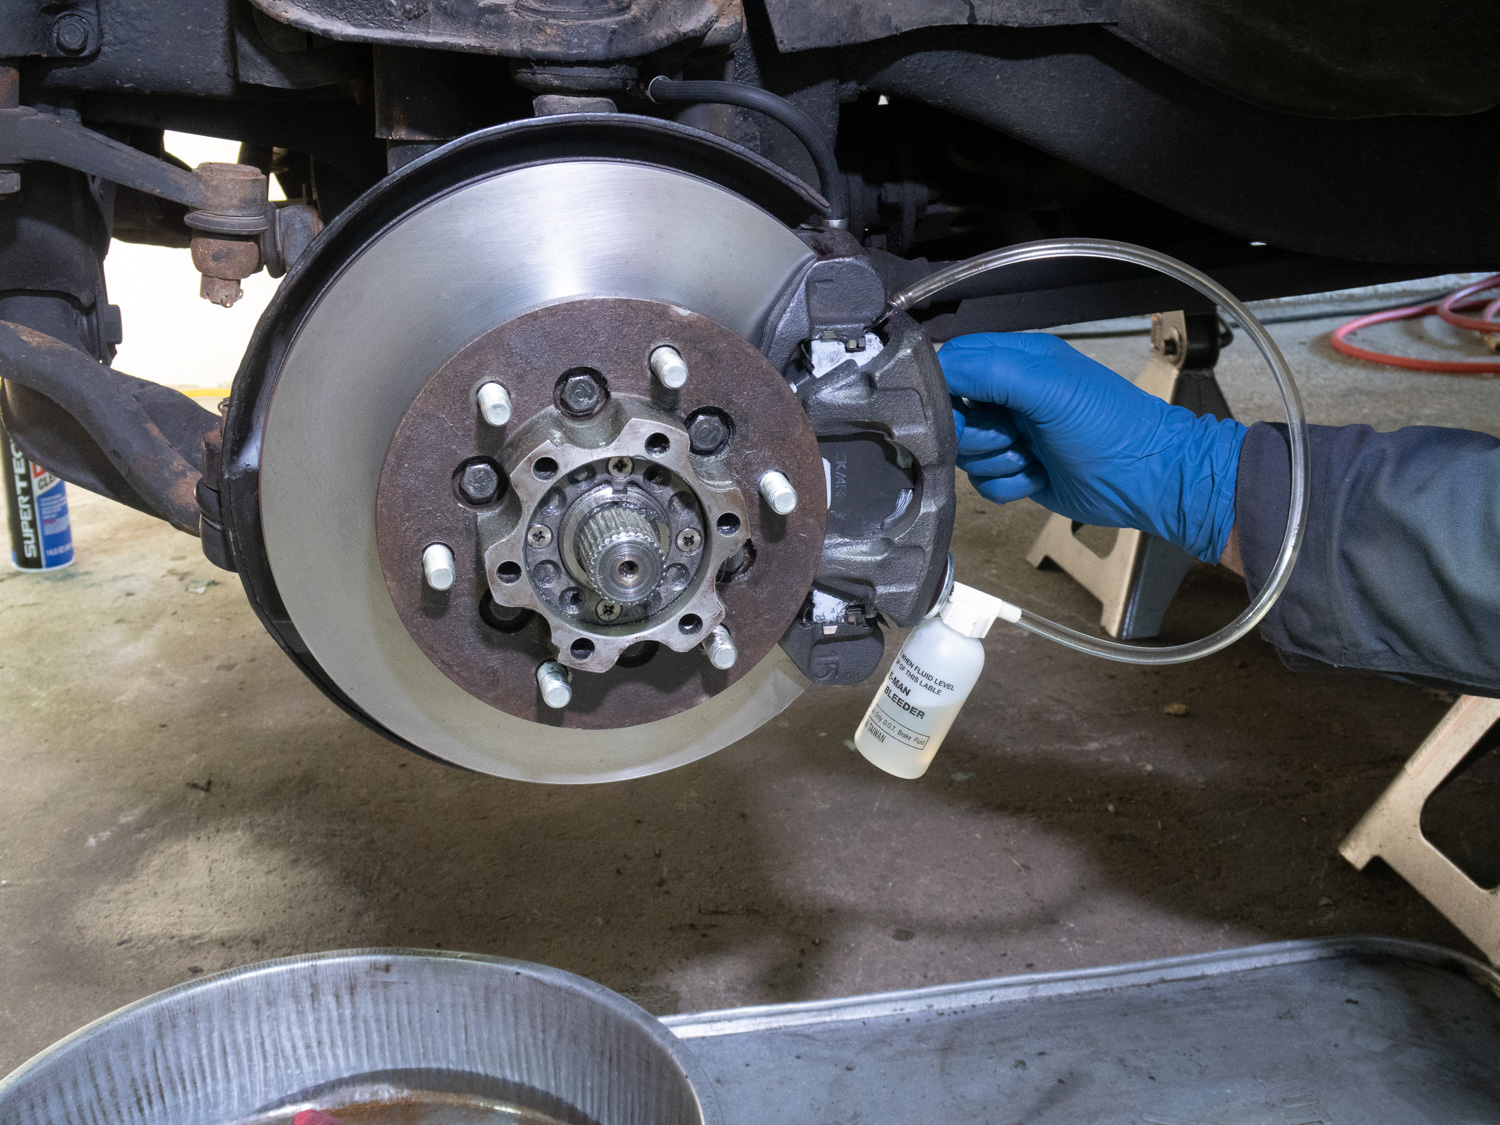 Winter projects brakes bled